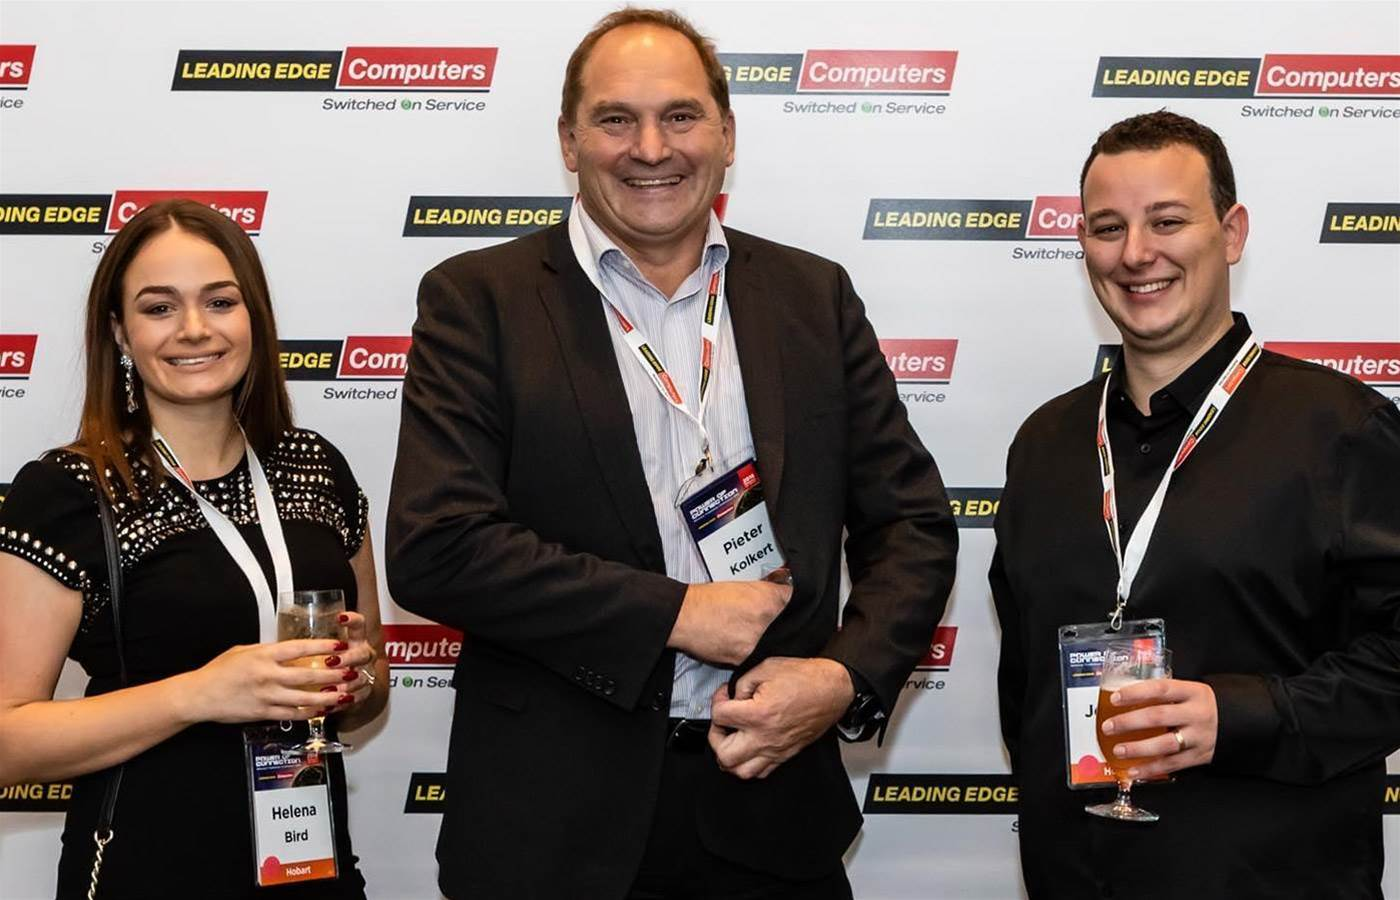 Leading Edge resellers converge for annual conference